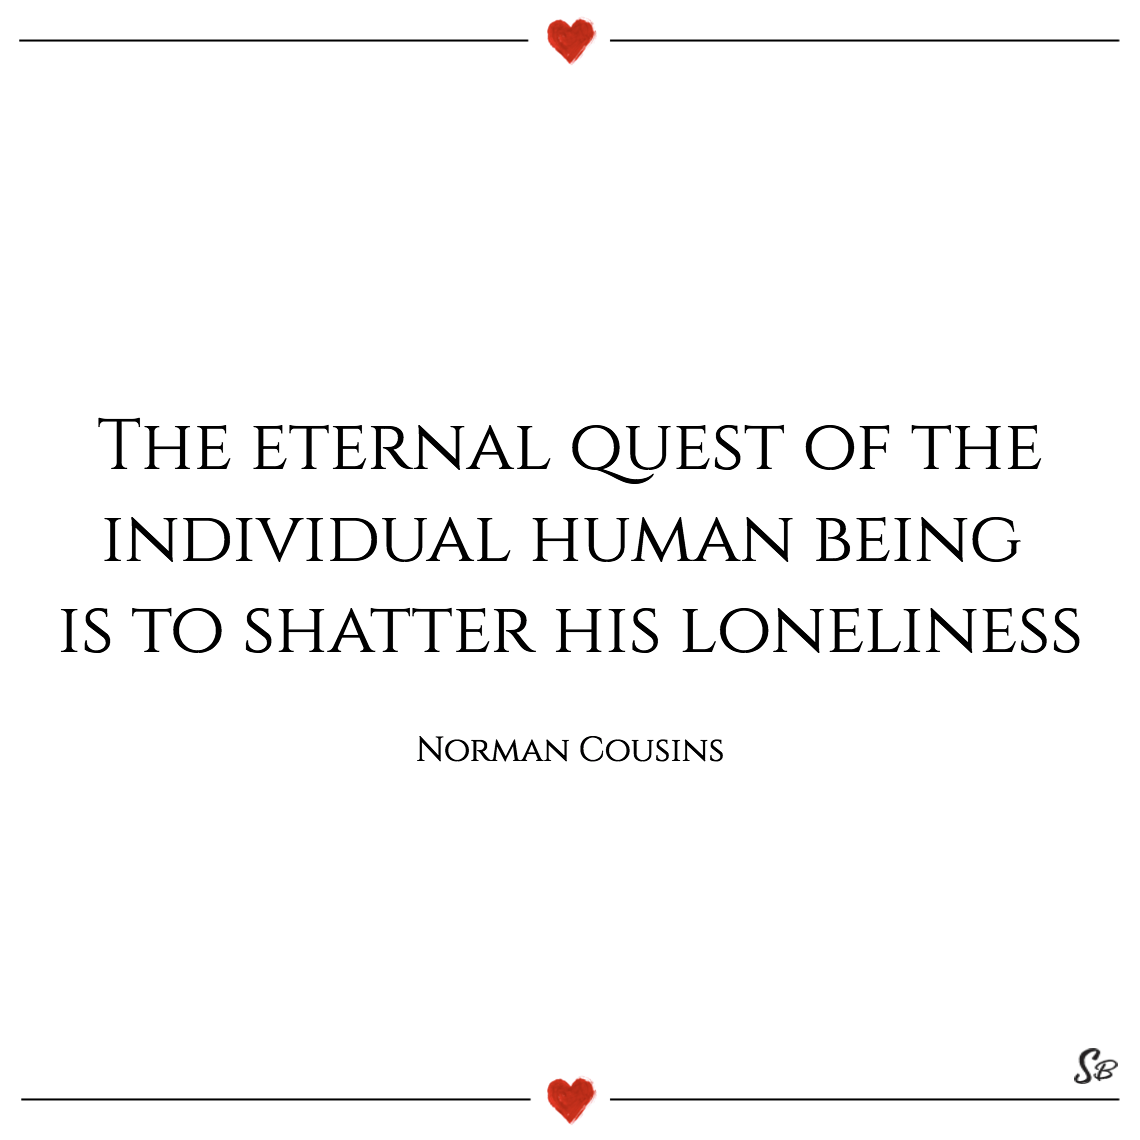 The eternal quest of the individual human being norman cousins